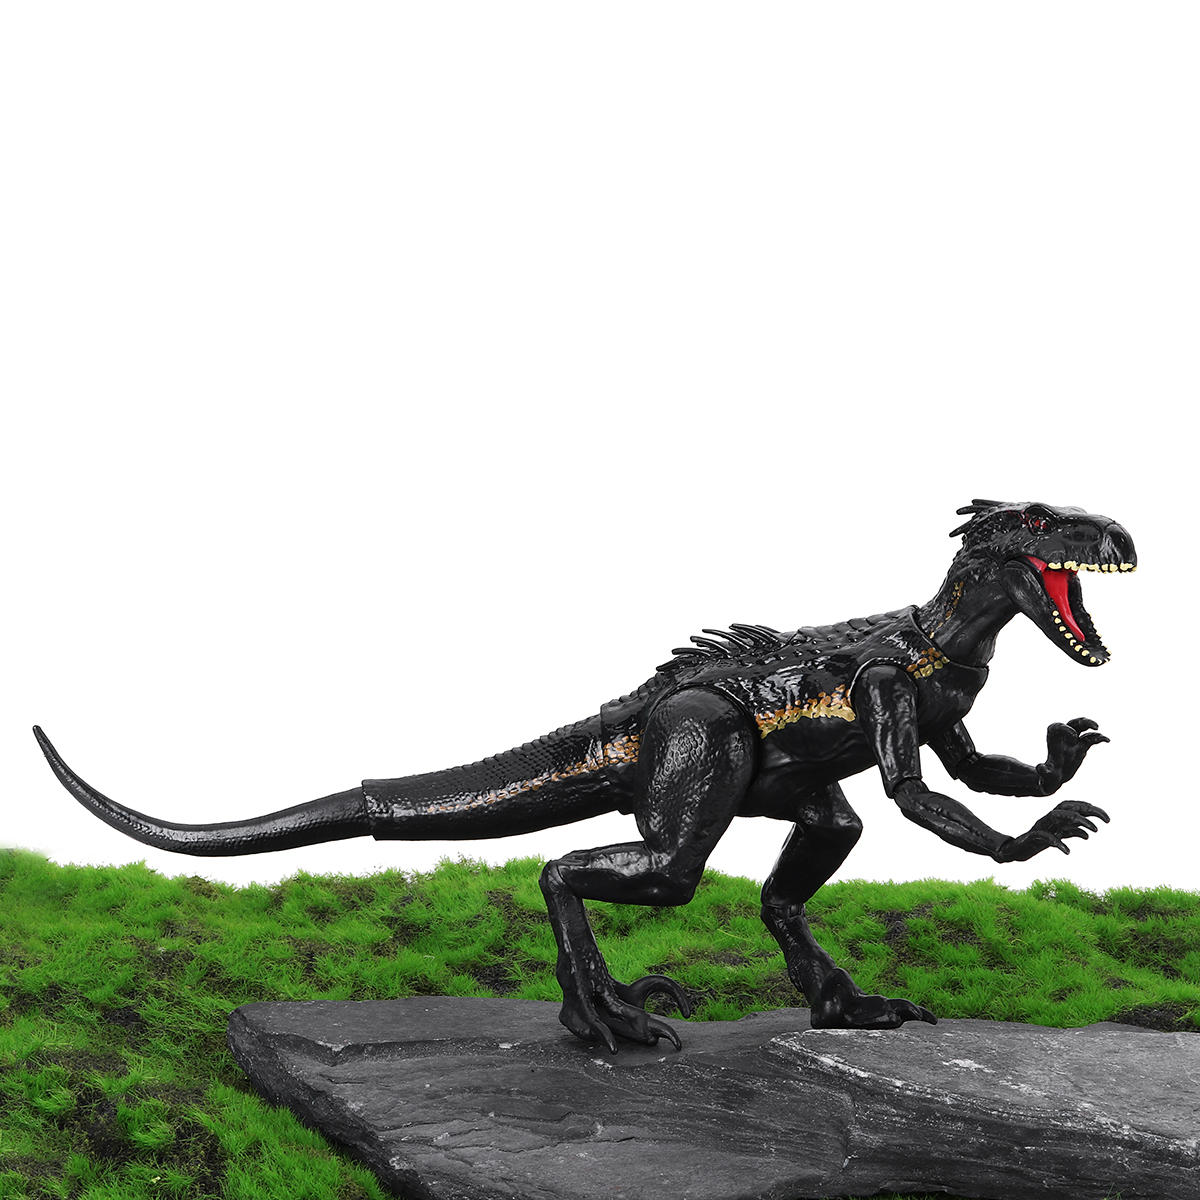 6Inches Dinosaur Toy Tyrannosaurus Model Action Figure Decor Boys Gift Collection